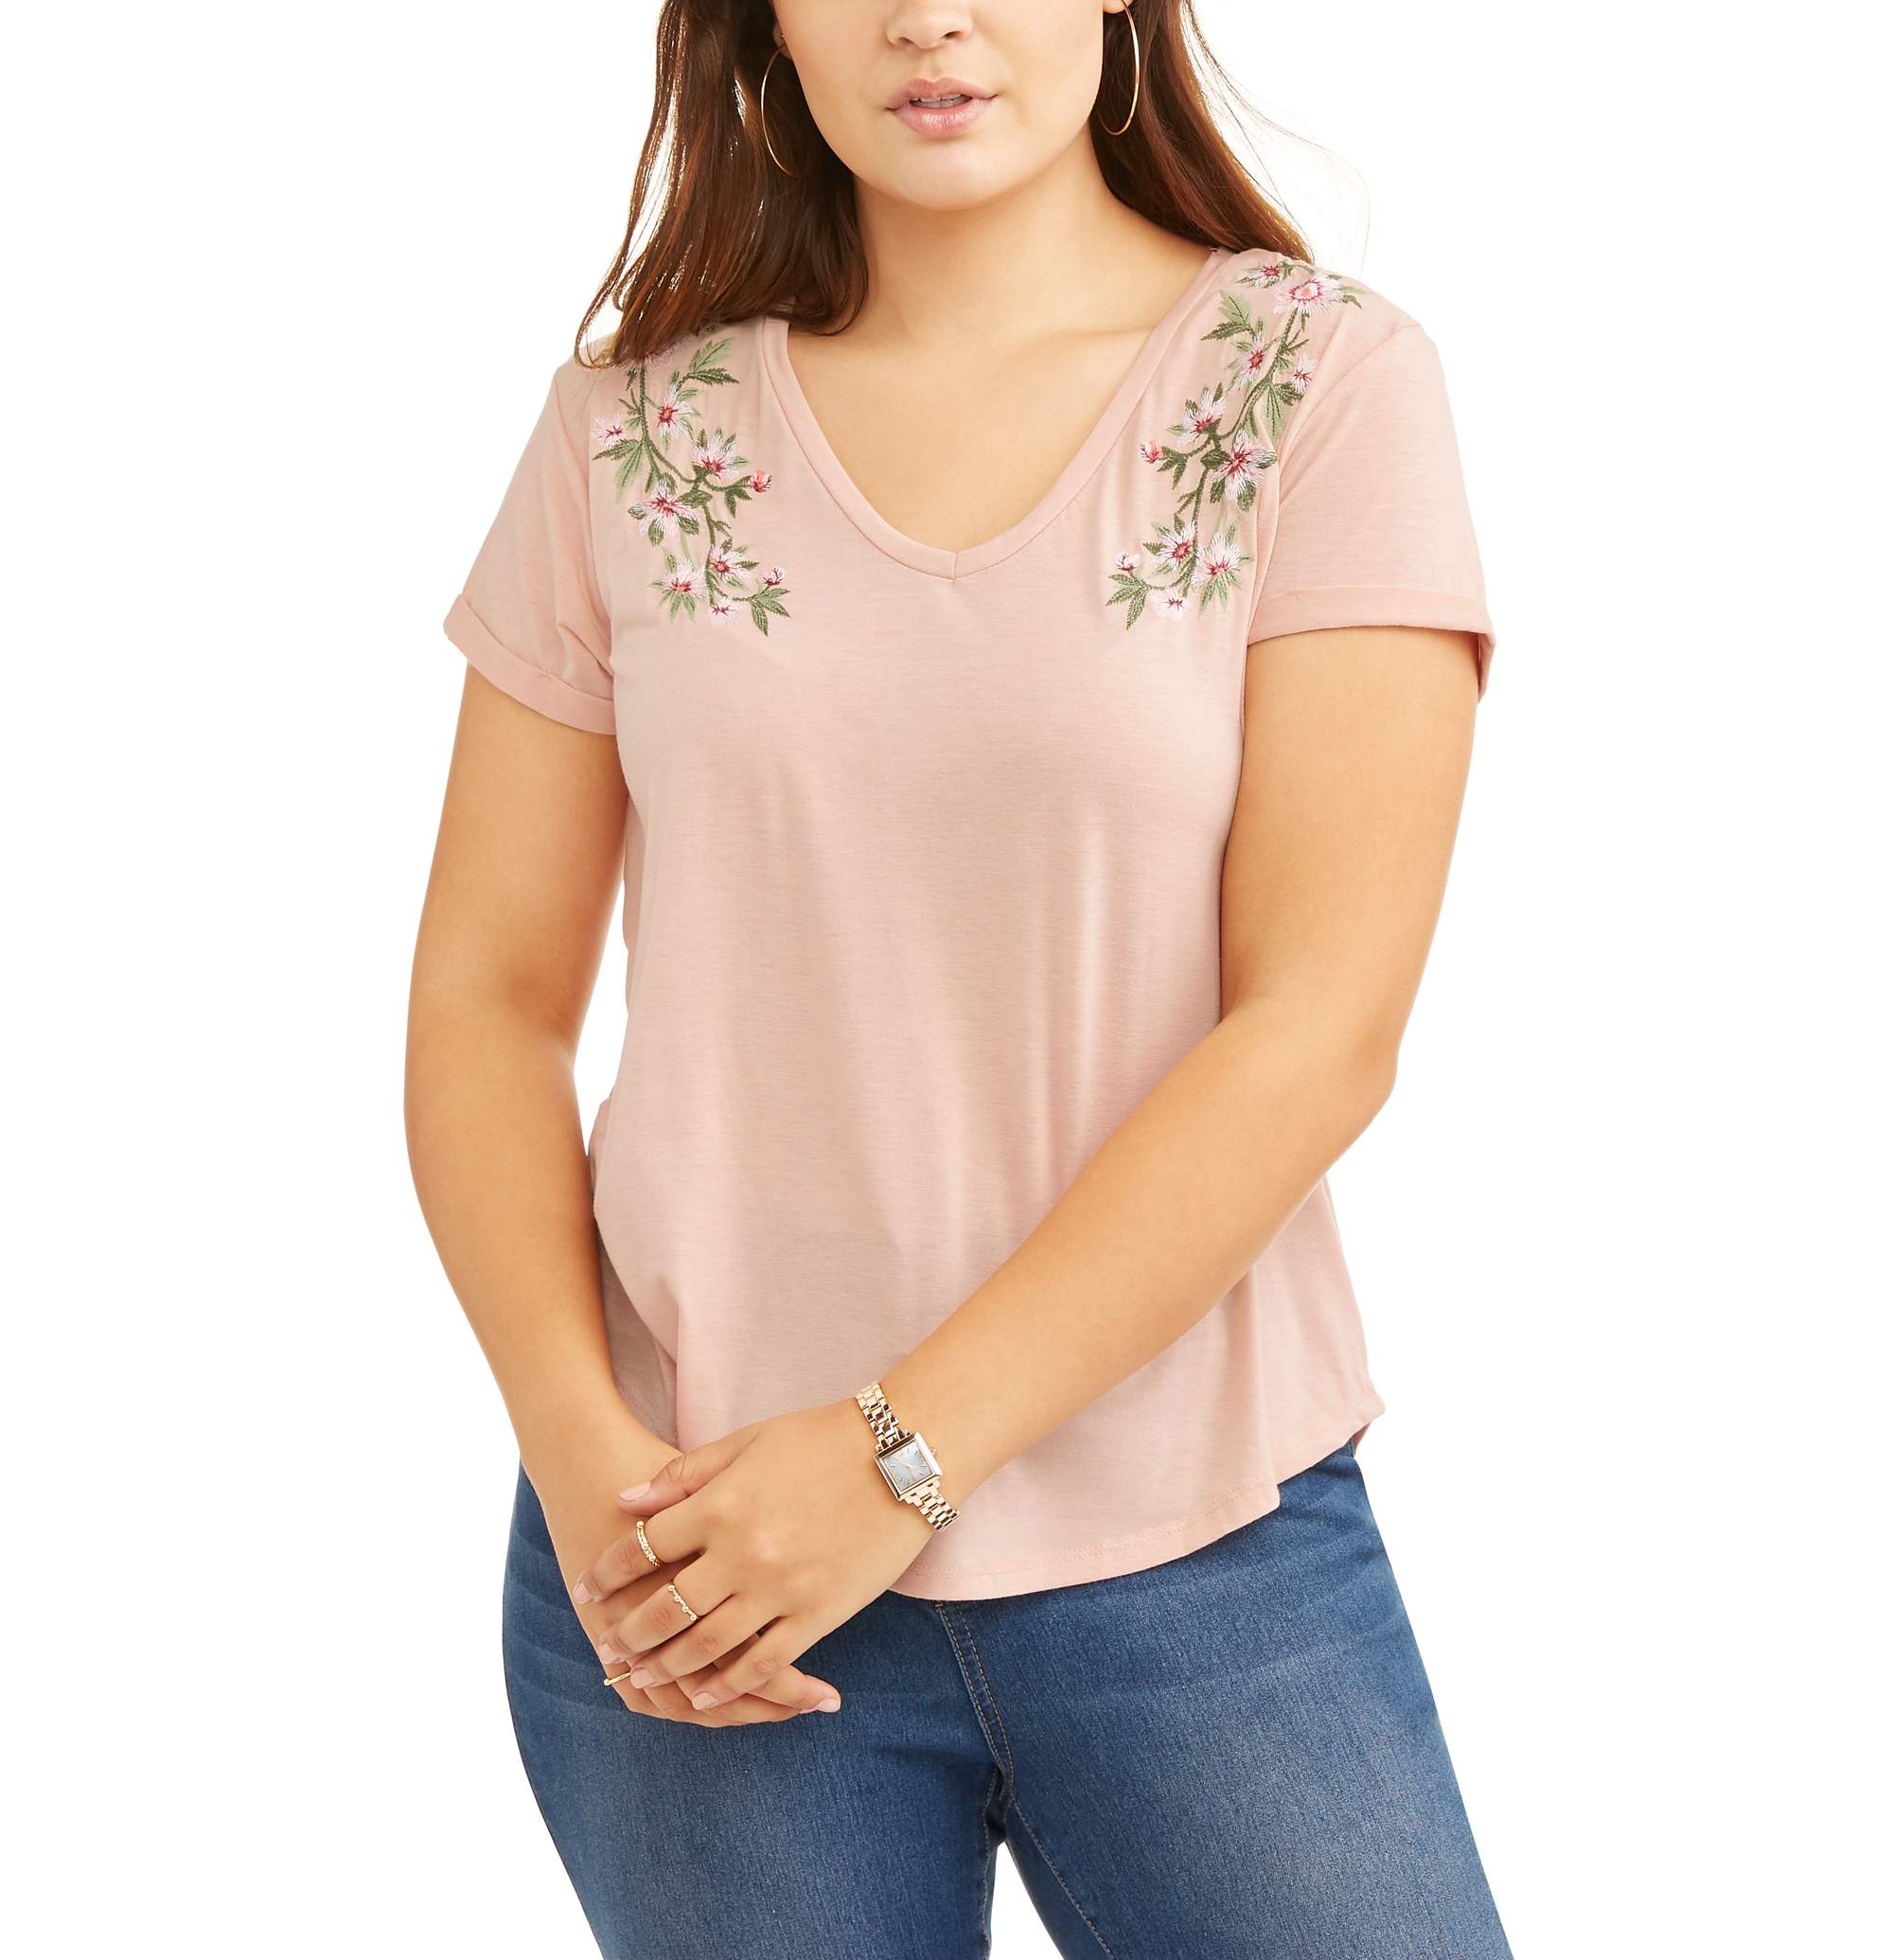 Poof Women's Plus V-Neck Top with Floral Detail